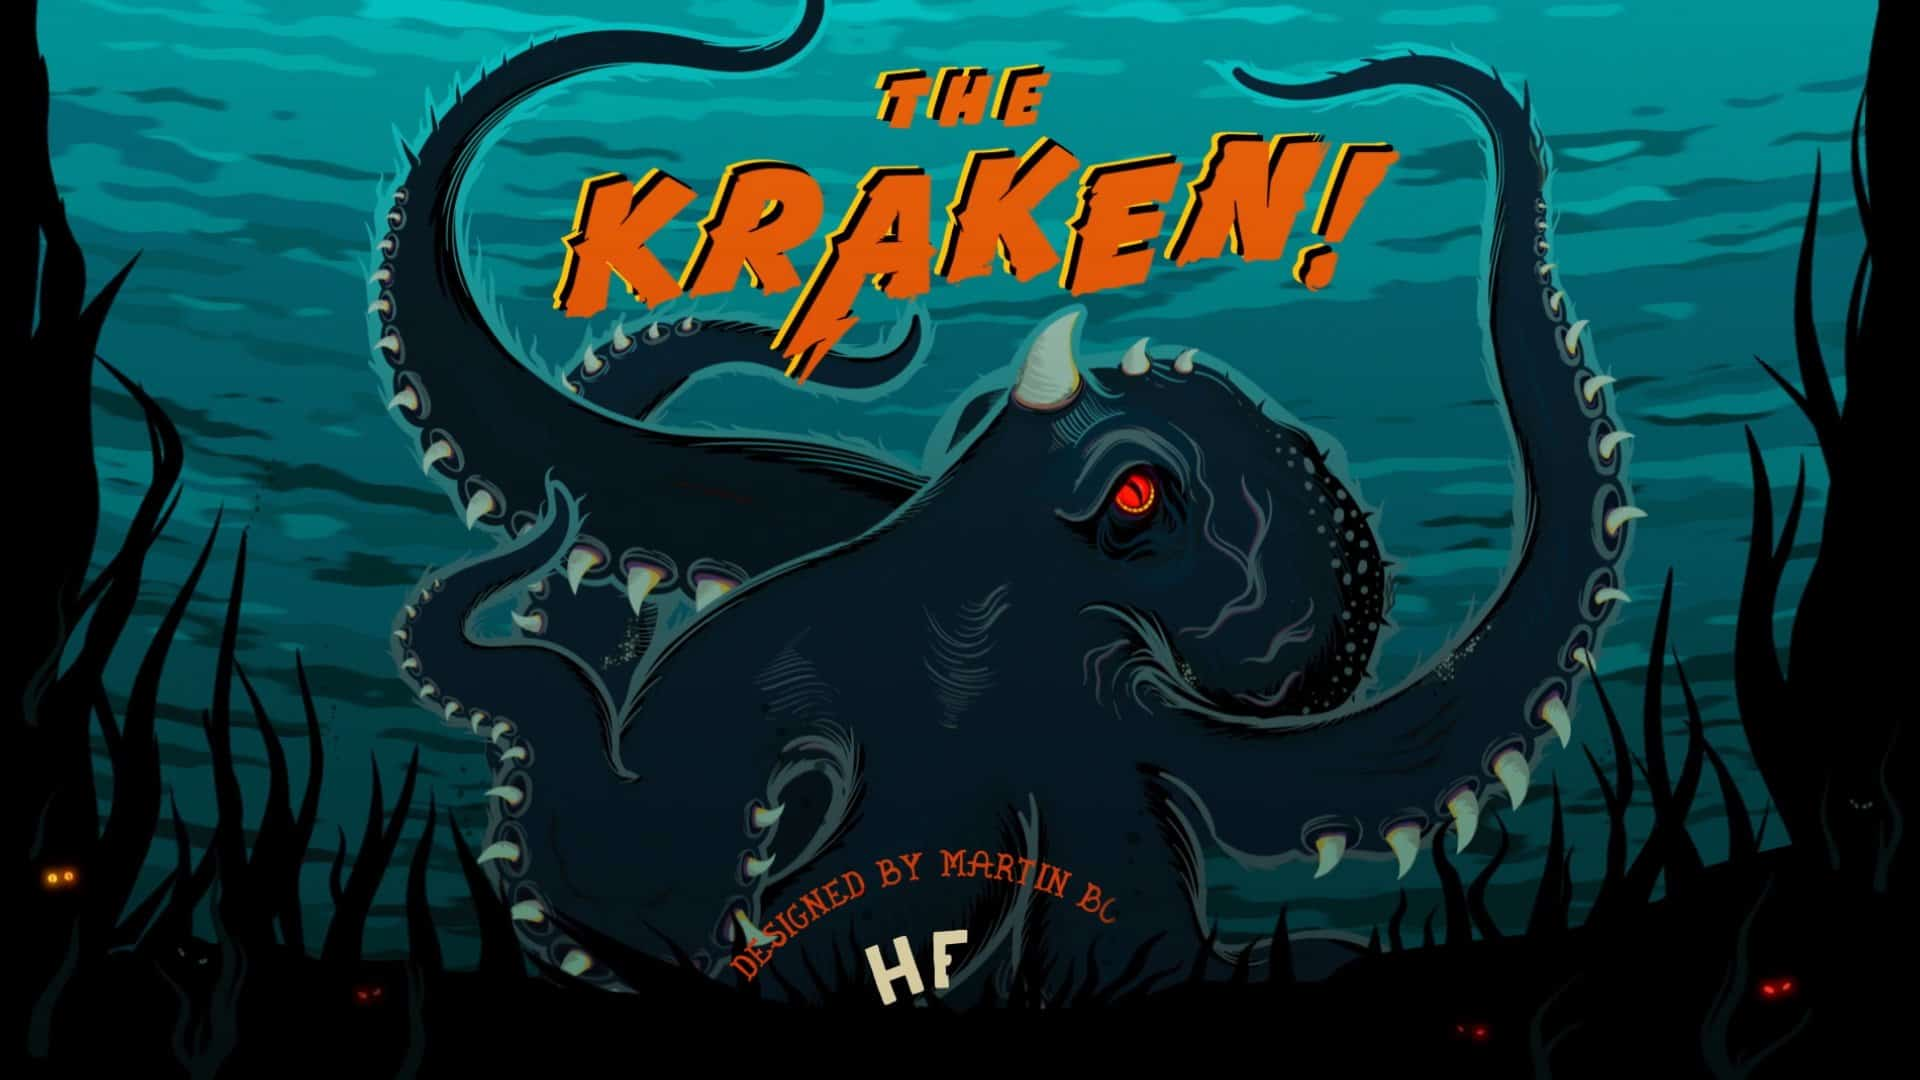 Hells pizza the kraken social media campaign still image